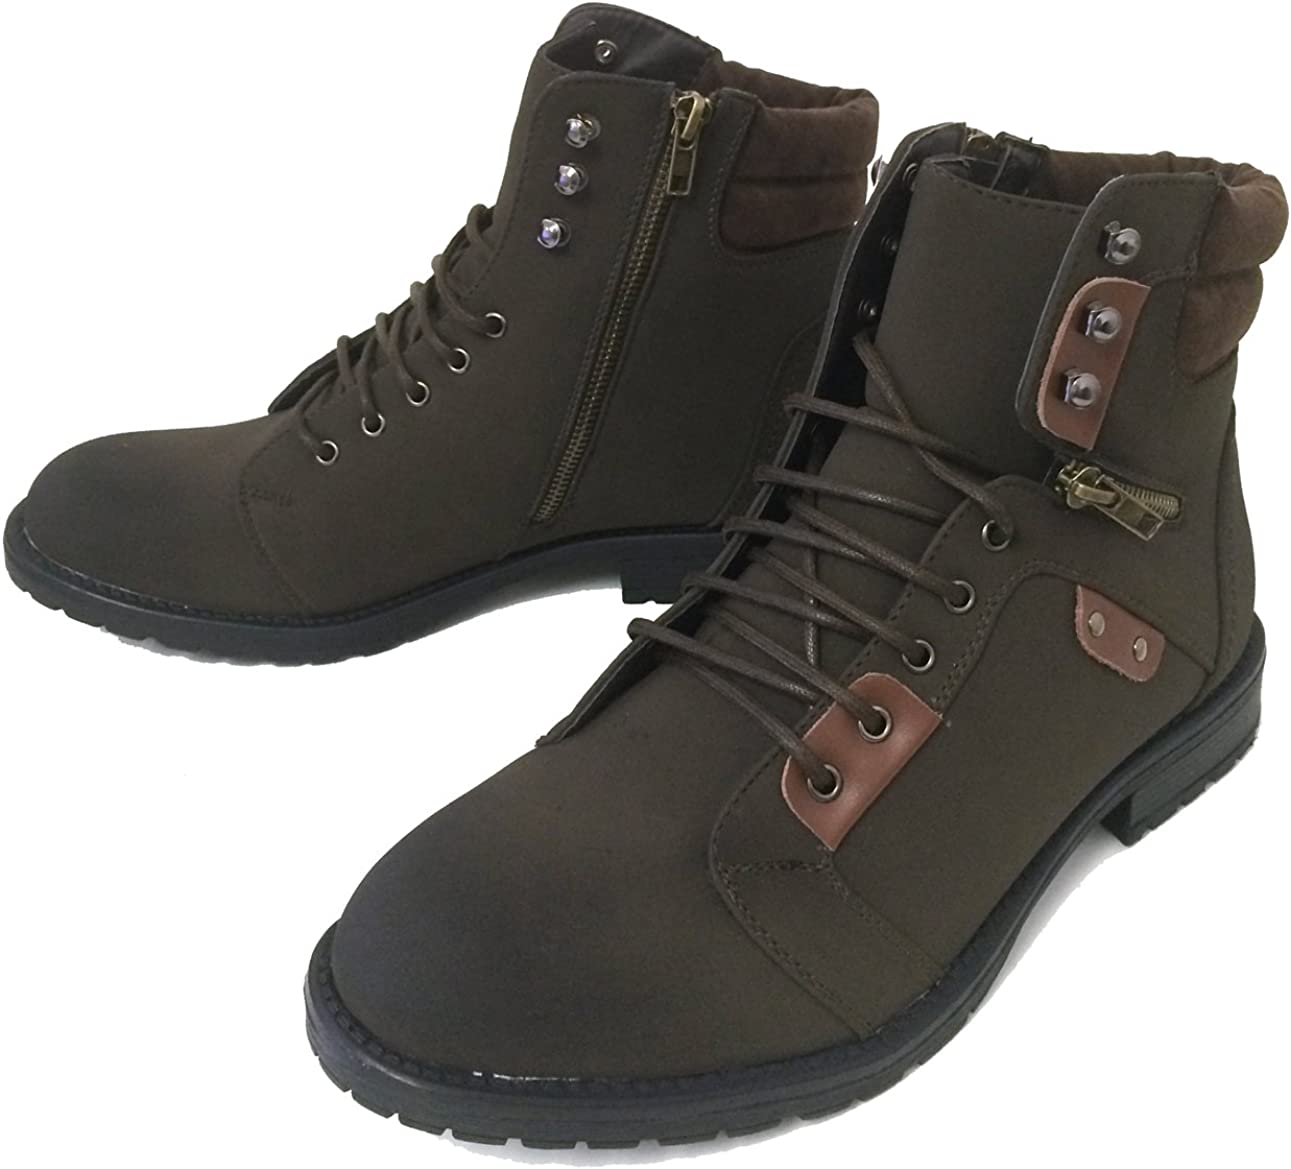 Men/'s faux Leather Warm Work Boots military zip Combat Boot Lace Up Shoes